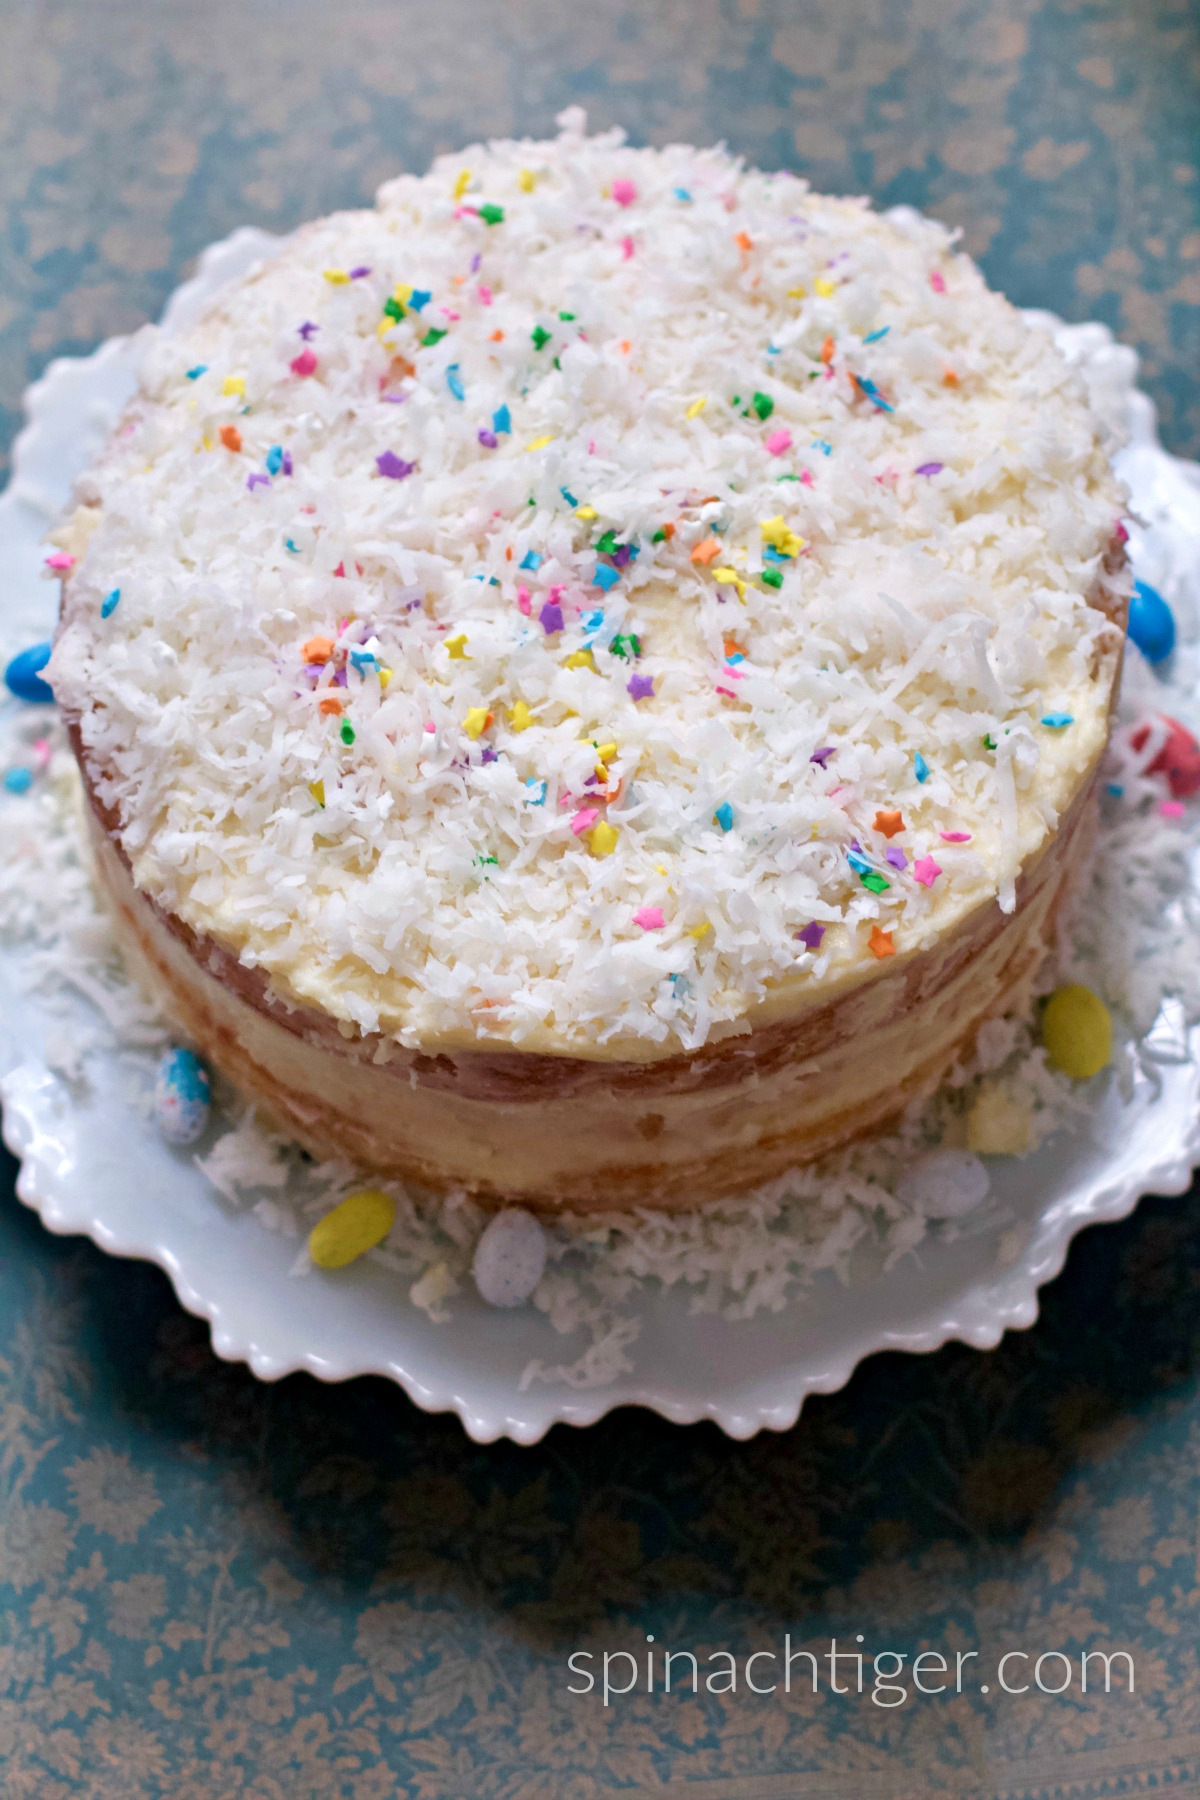 Naked Coconut cake with Buttercream Frosting from Spinach Tiger